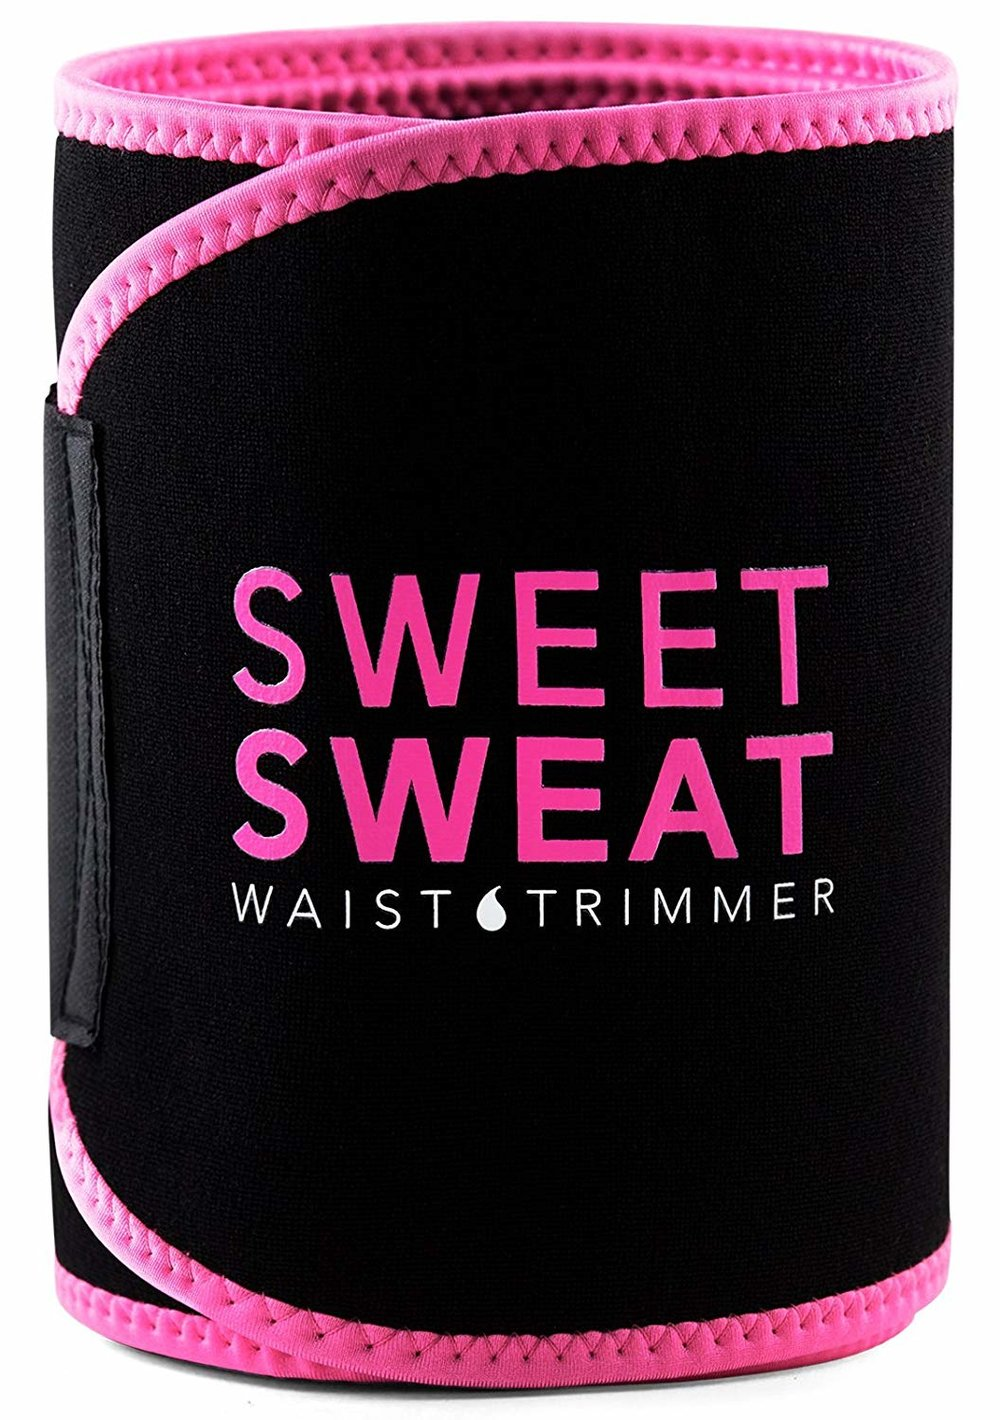 sweat waist trimmer.jpg